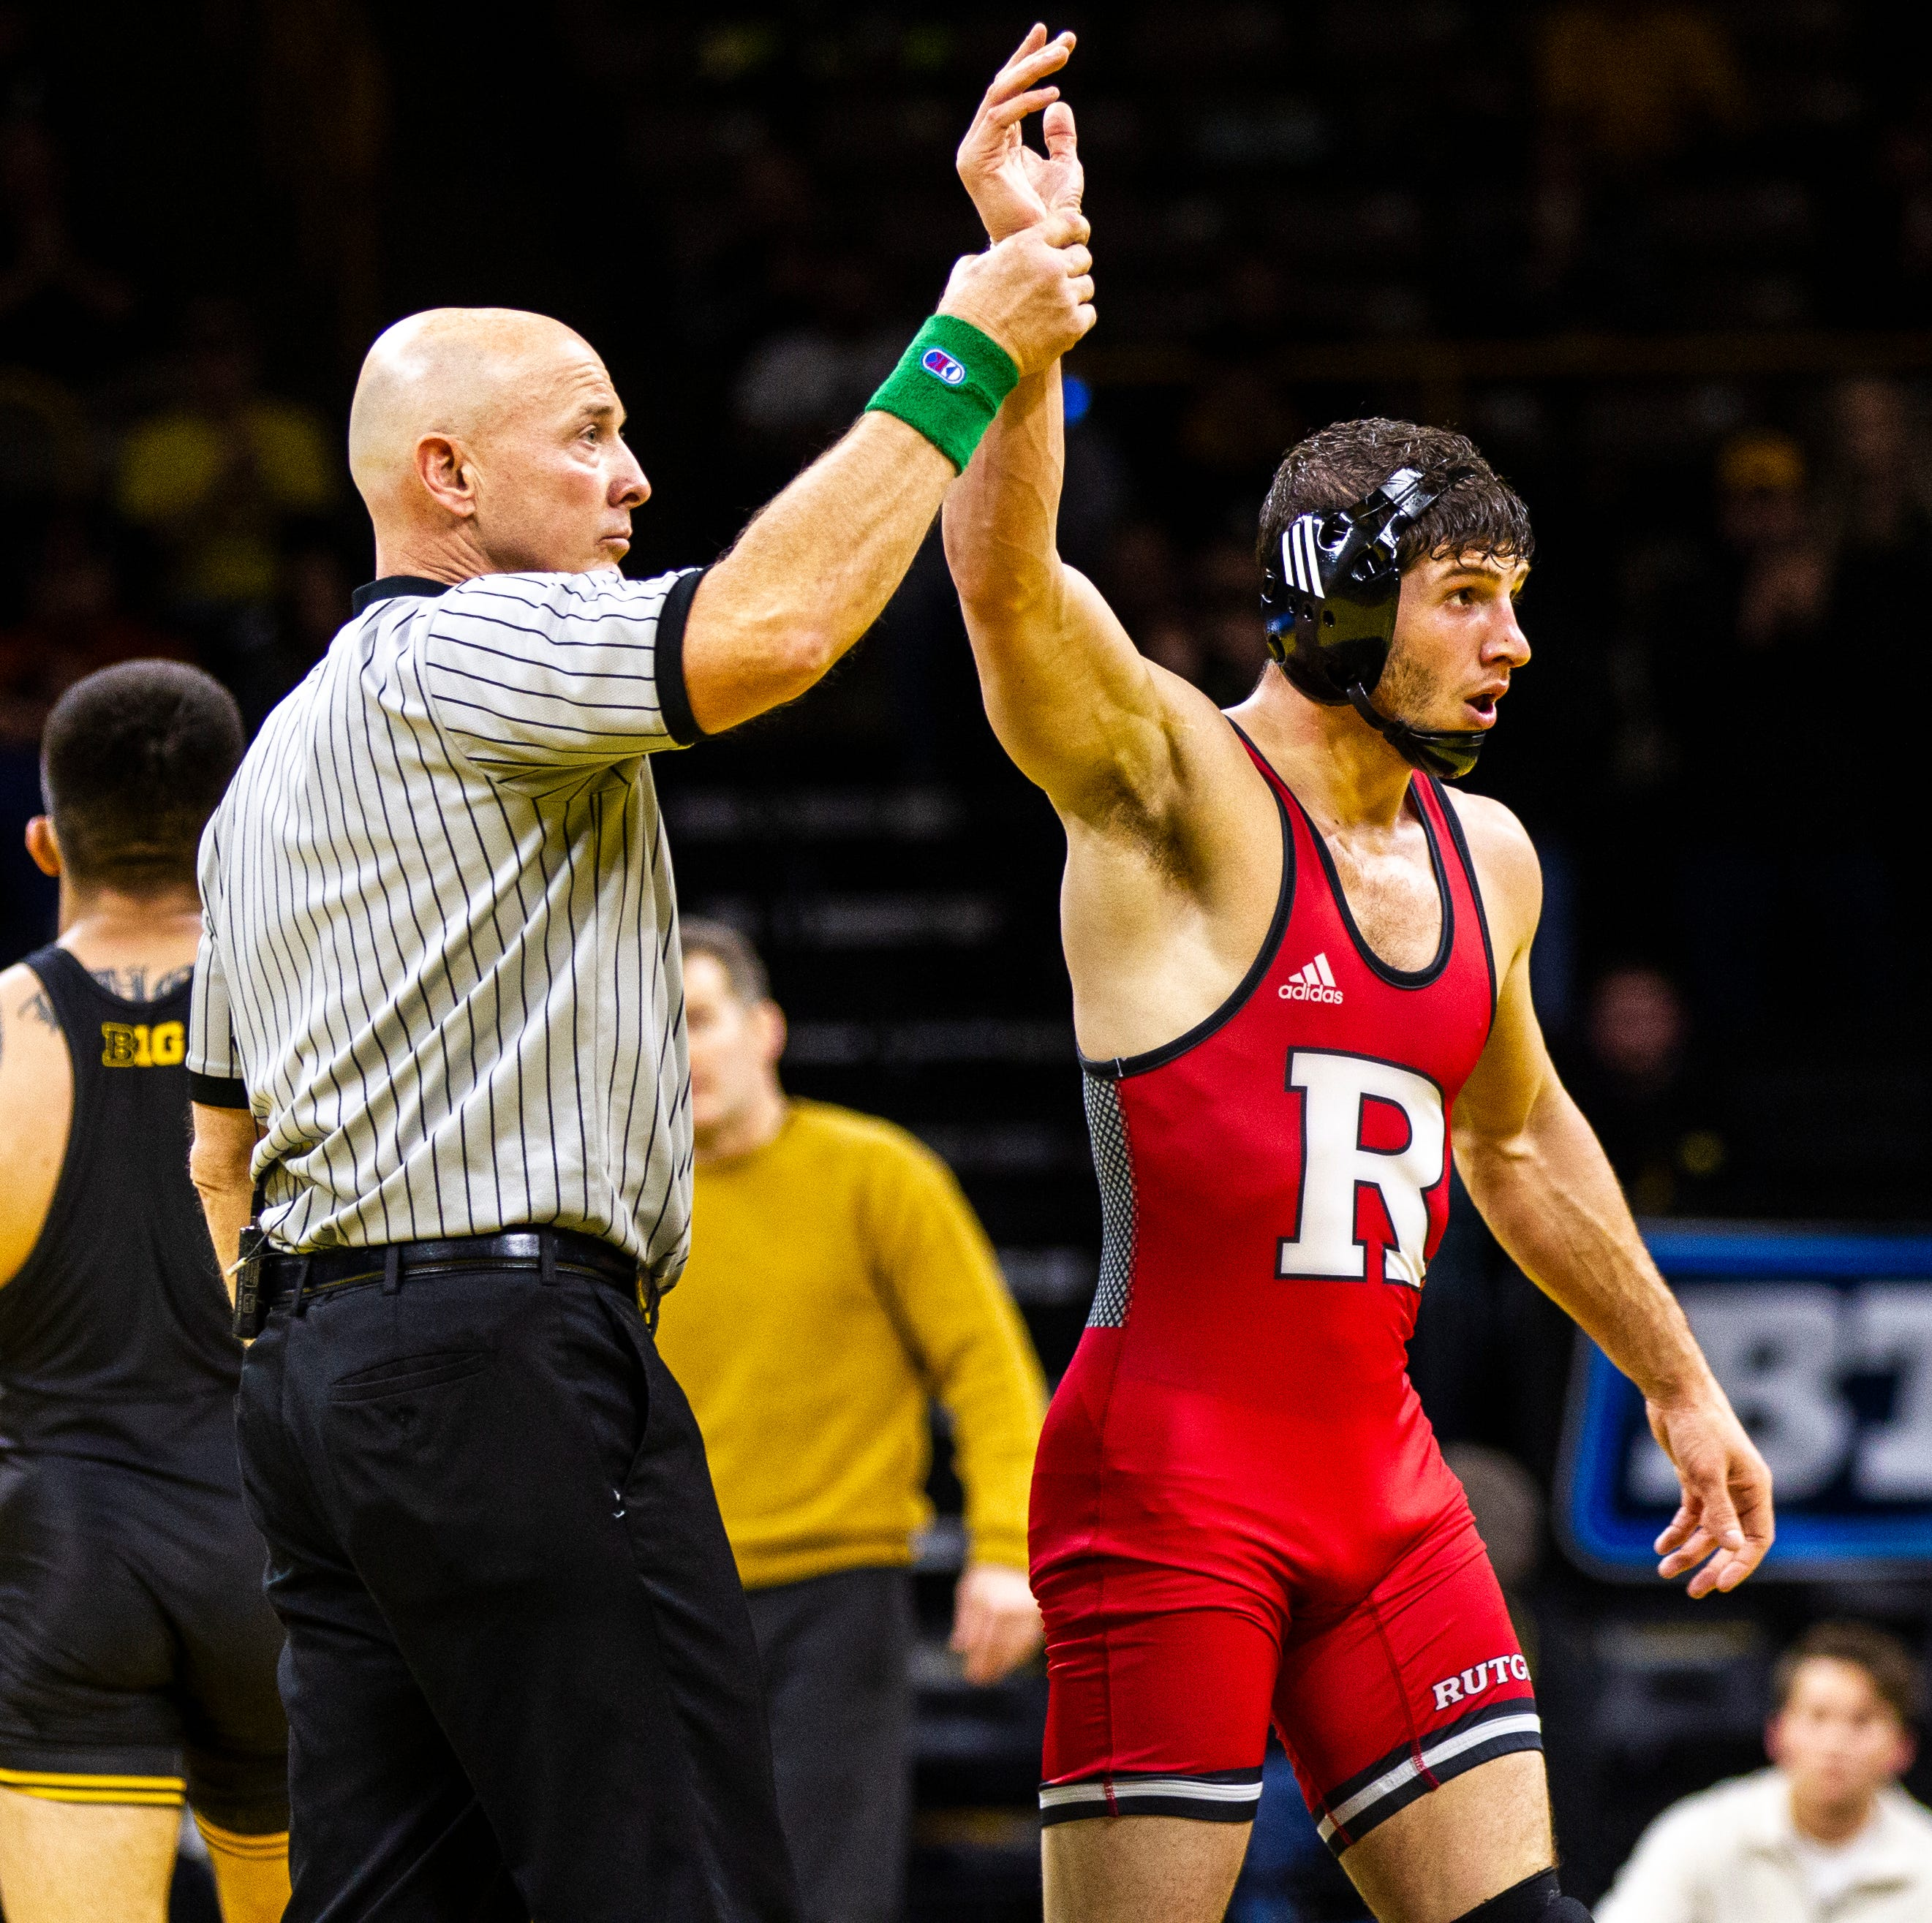 NCAA wrestling tournament brackets 2019: Top seeds announced for each weight class